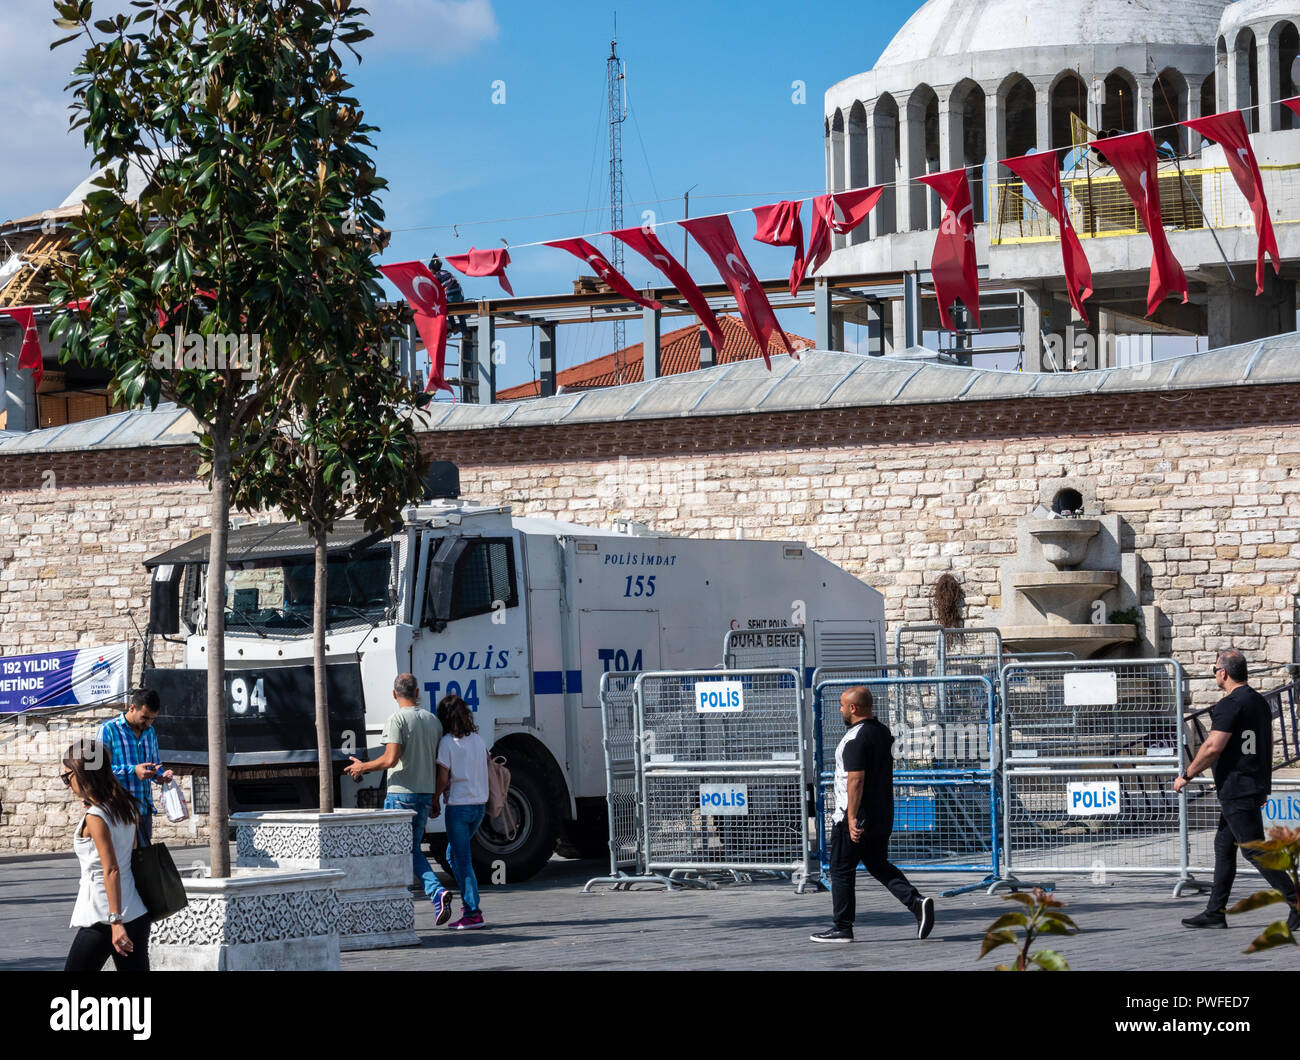 Istanbul, Turkey, September 2018: Armoured white water cannon of the Turkish police and police barriers at Taksim Square - Stock Image